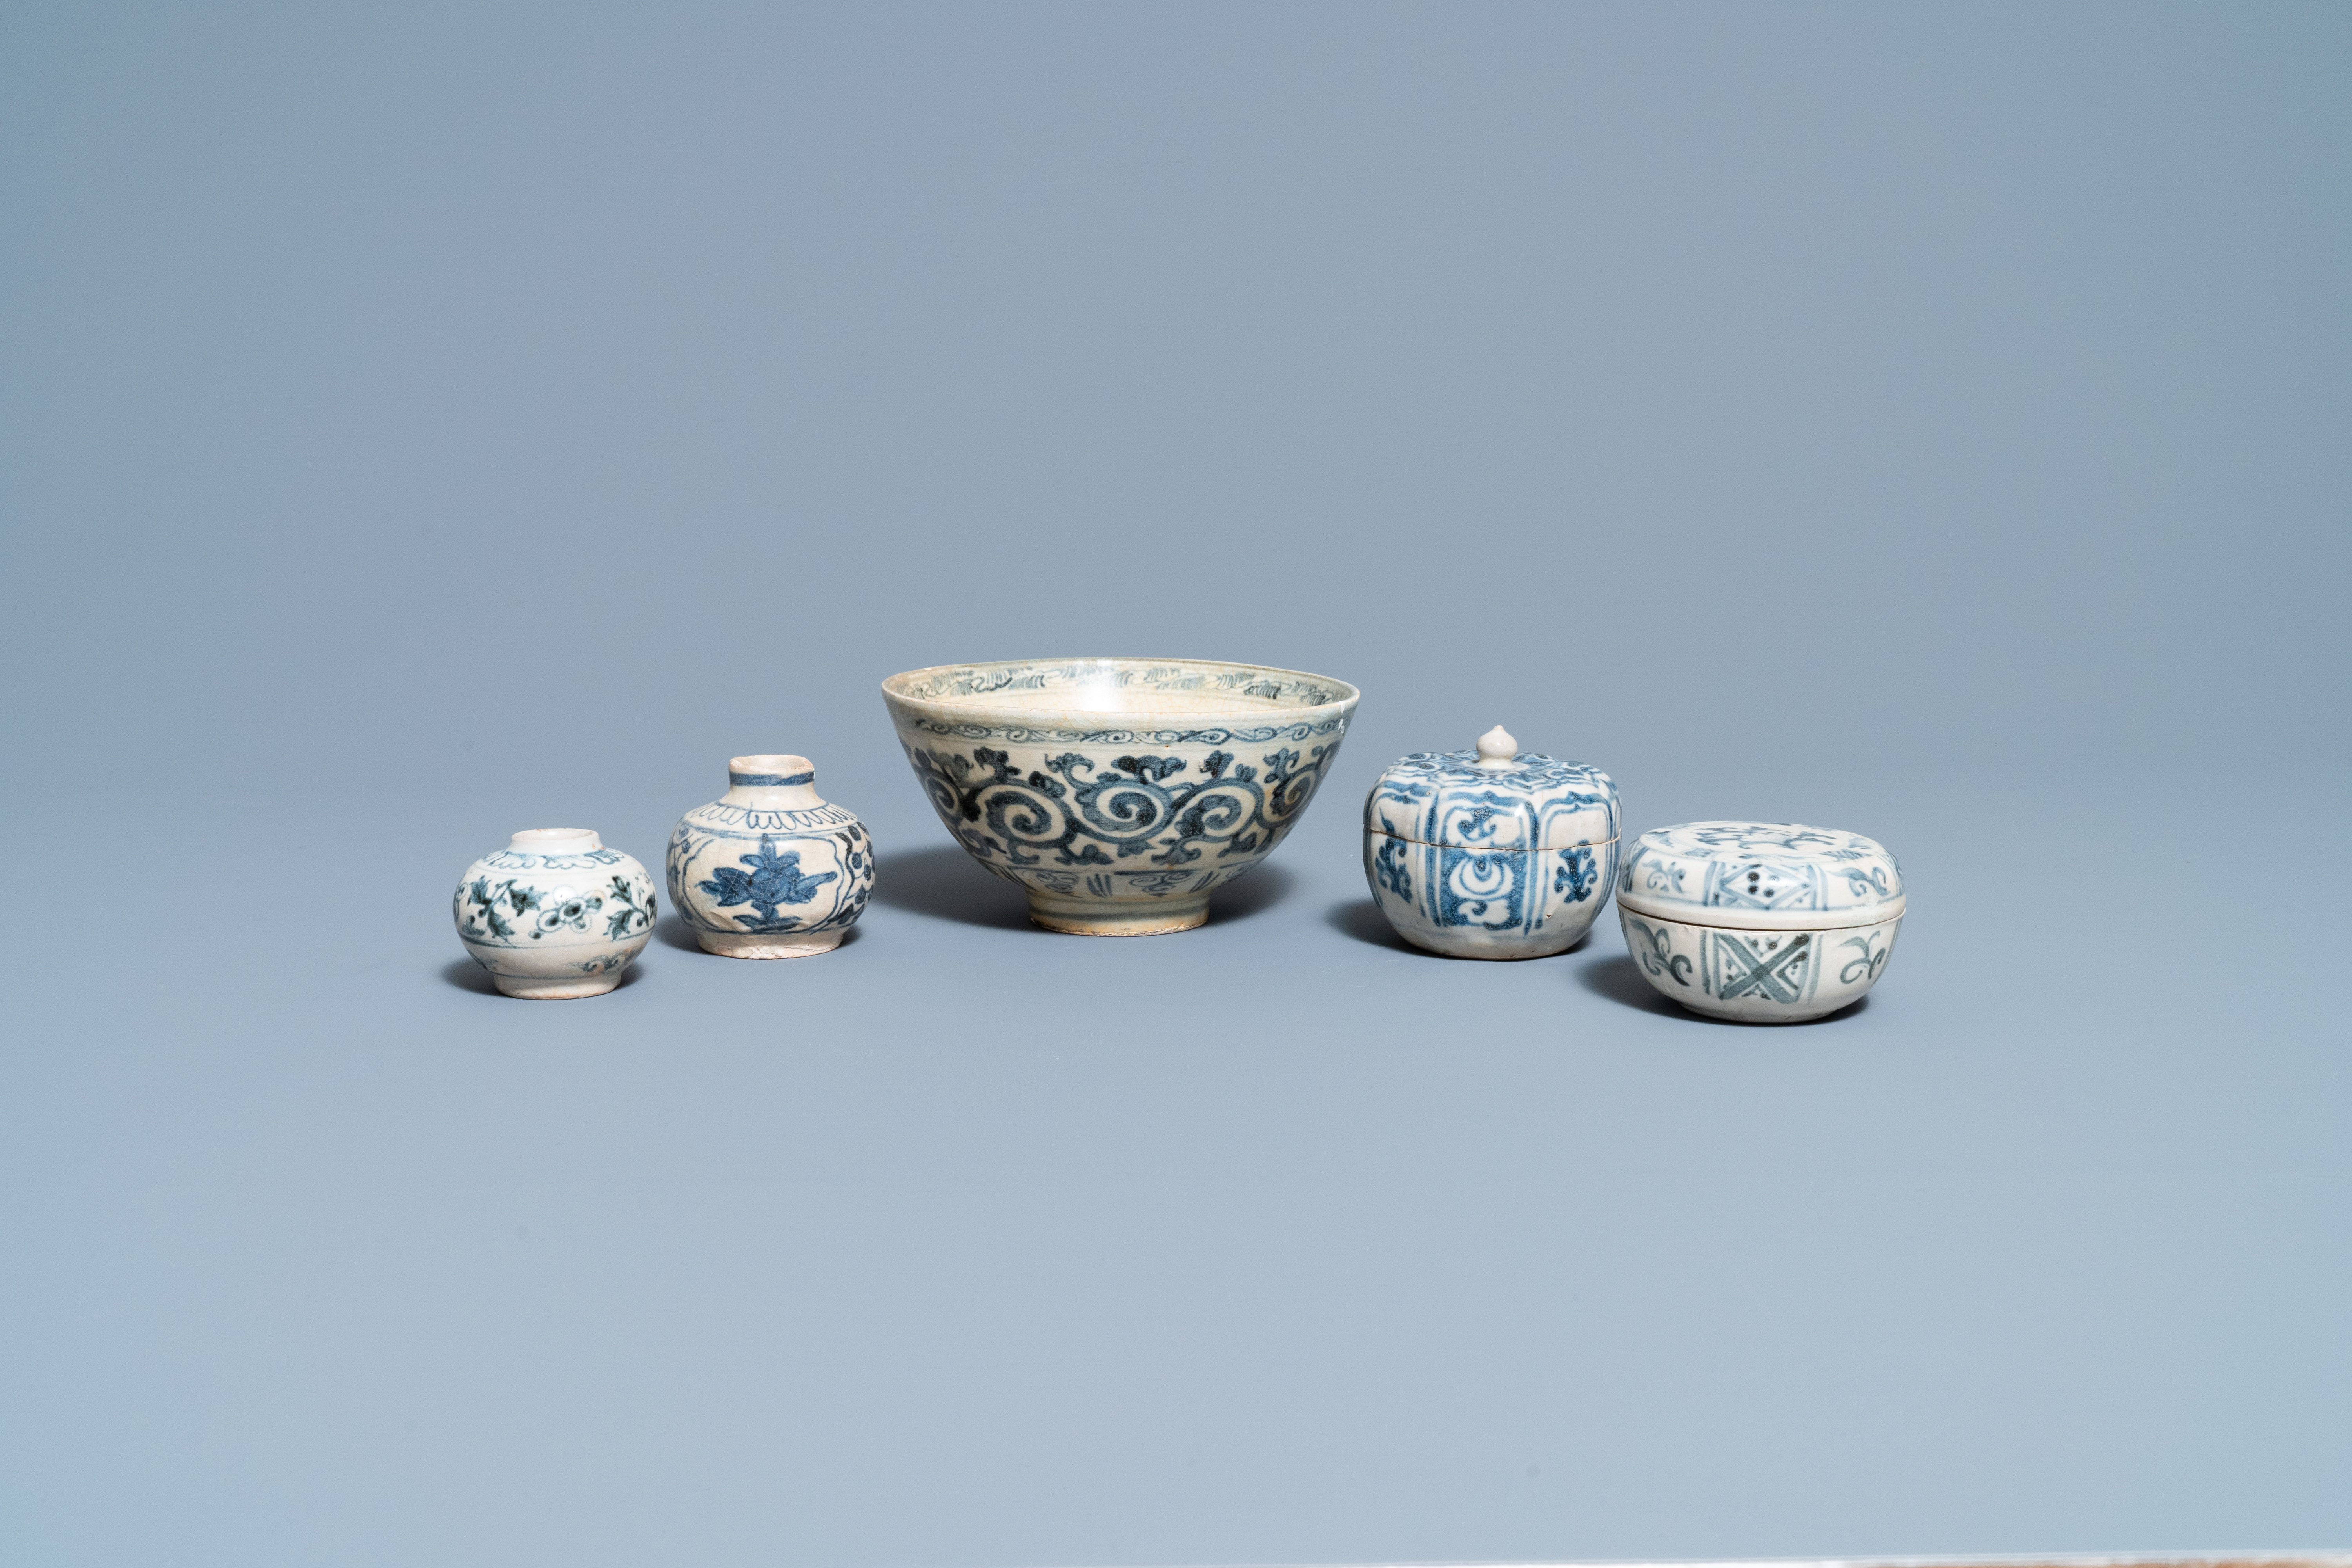 Four blue and white Vietnamese or Annamese ceramics and a Chinese jarlet, 15/16th C.